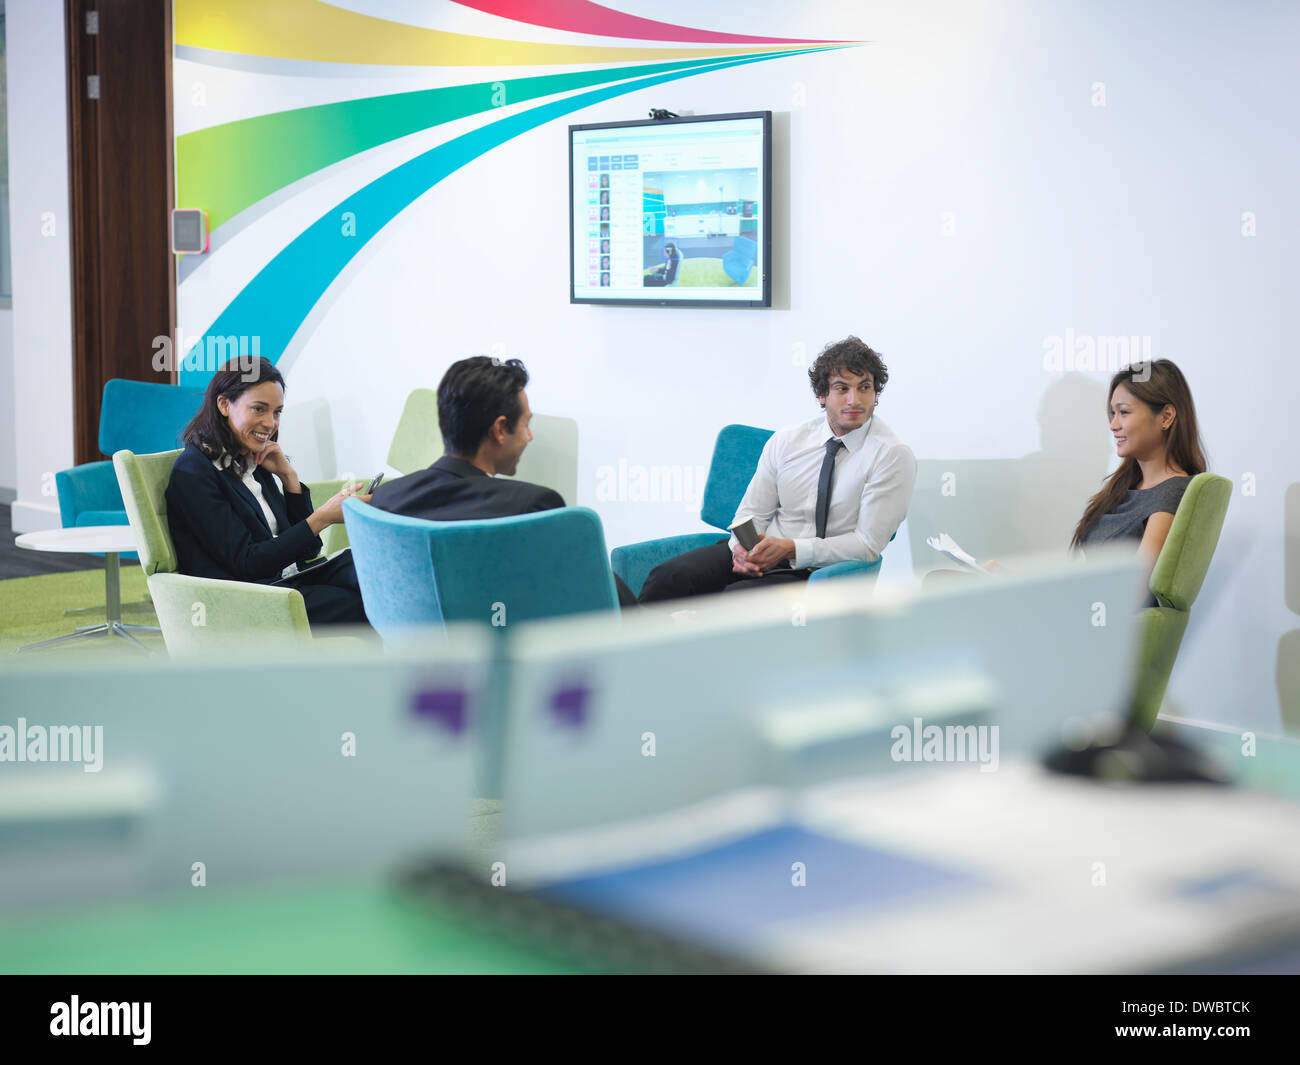 Workers relaxing in modern office - Stock Image